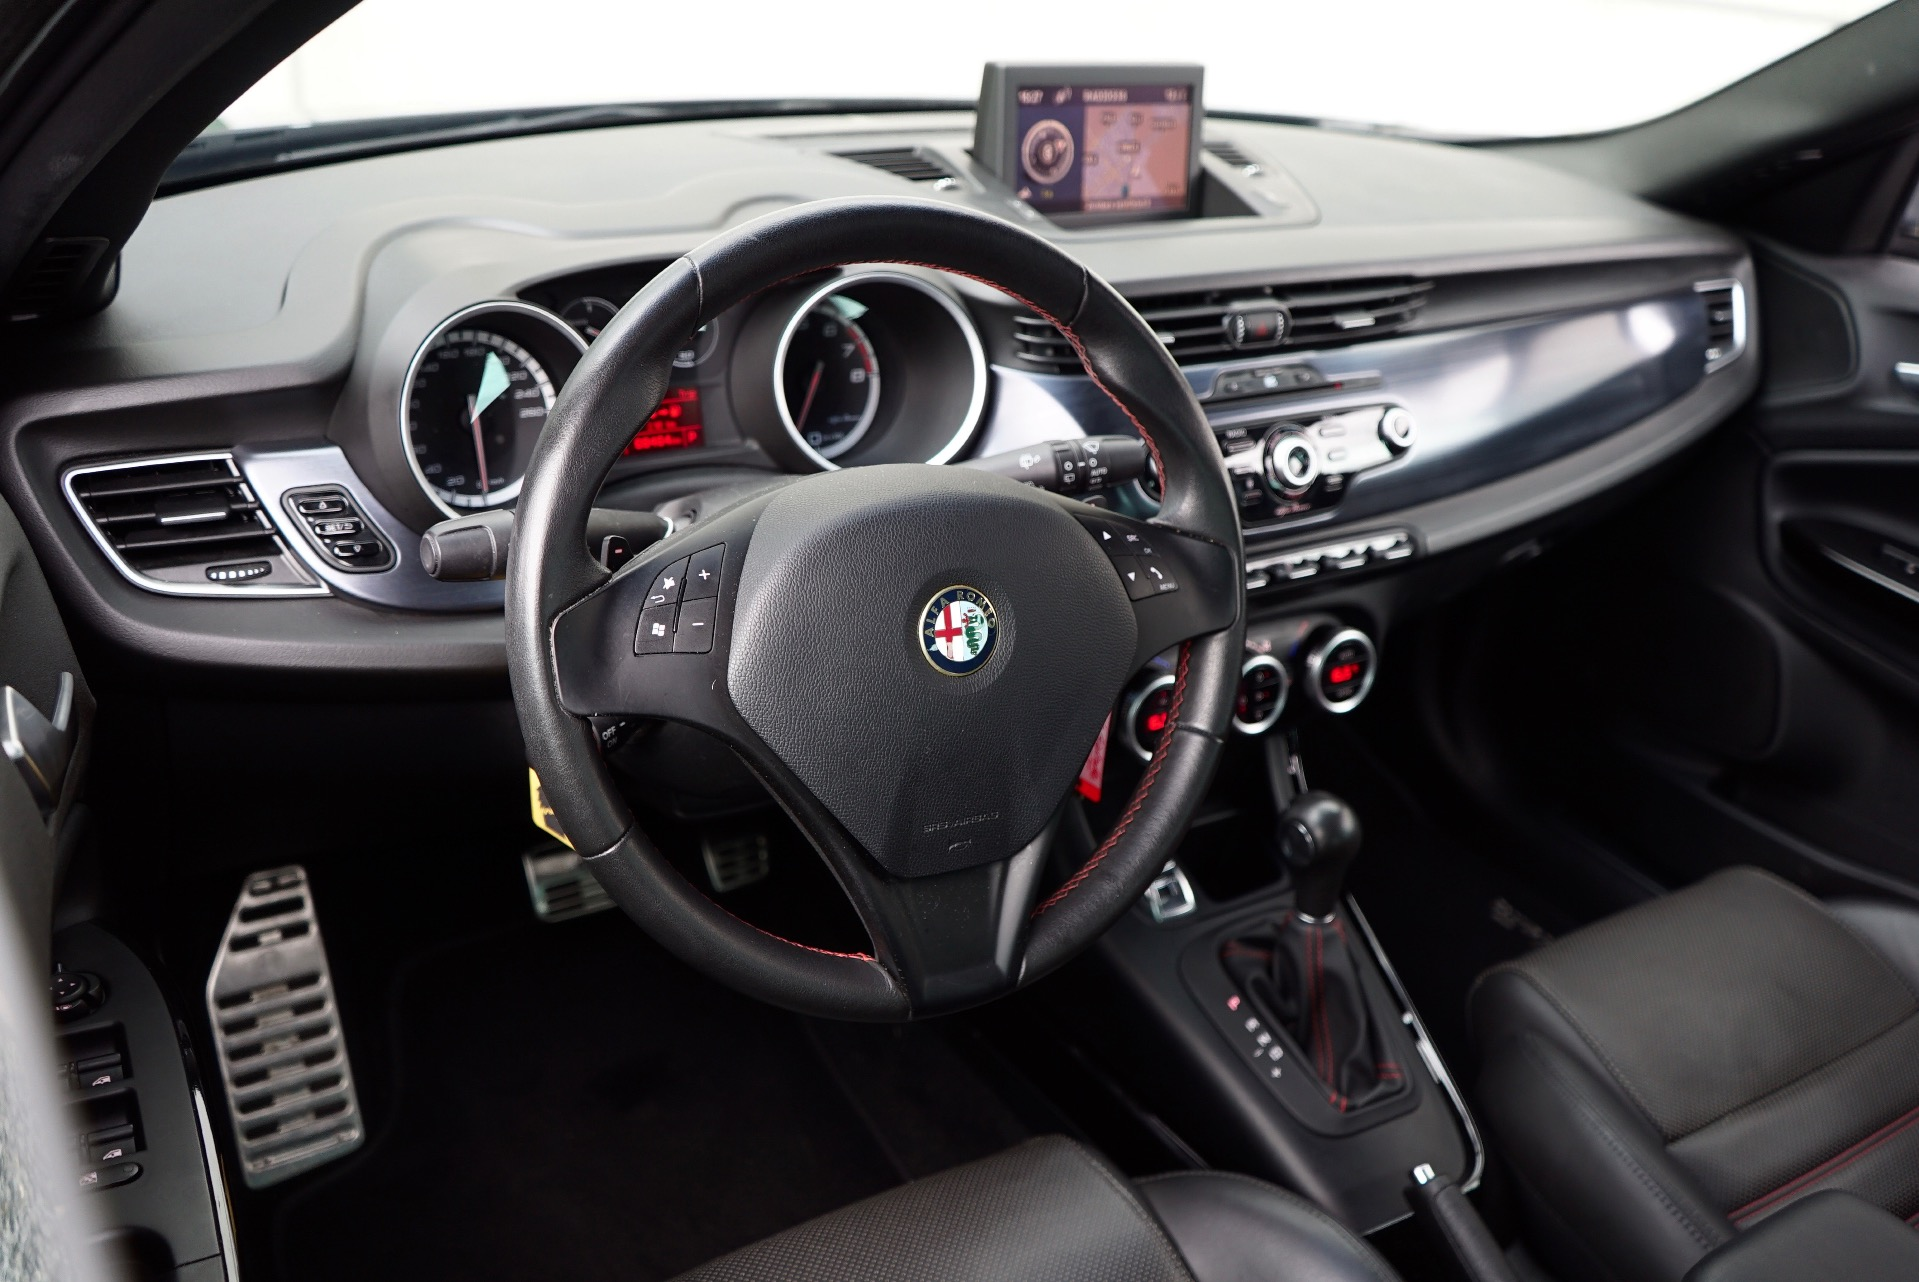 ALFA ROMEO GIULIETTA 1.4 TURBO M-AIR 170 TCT